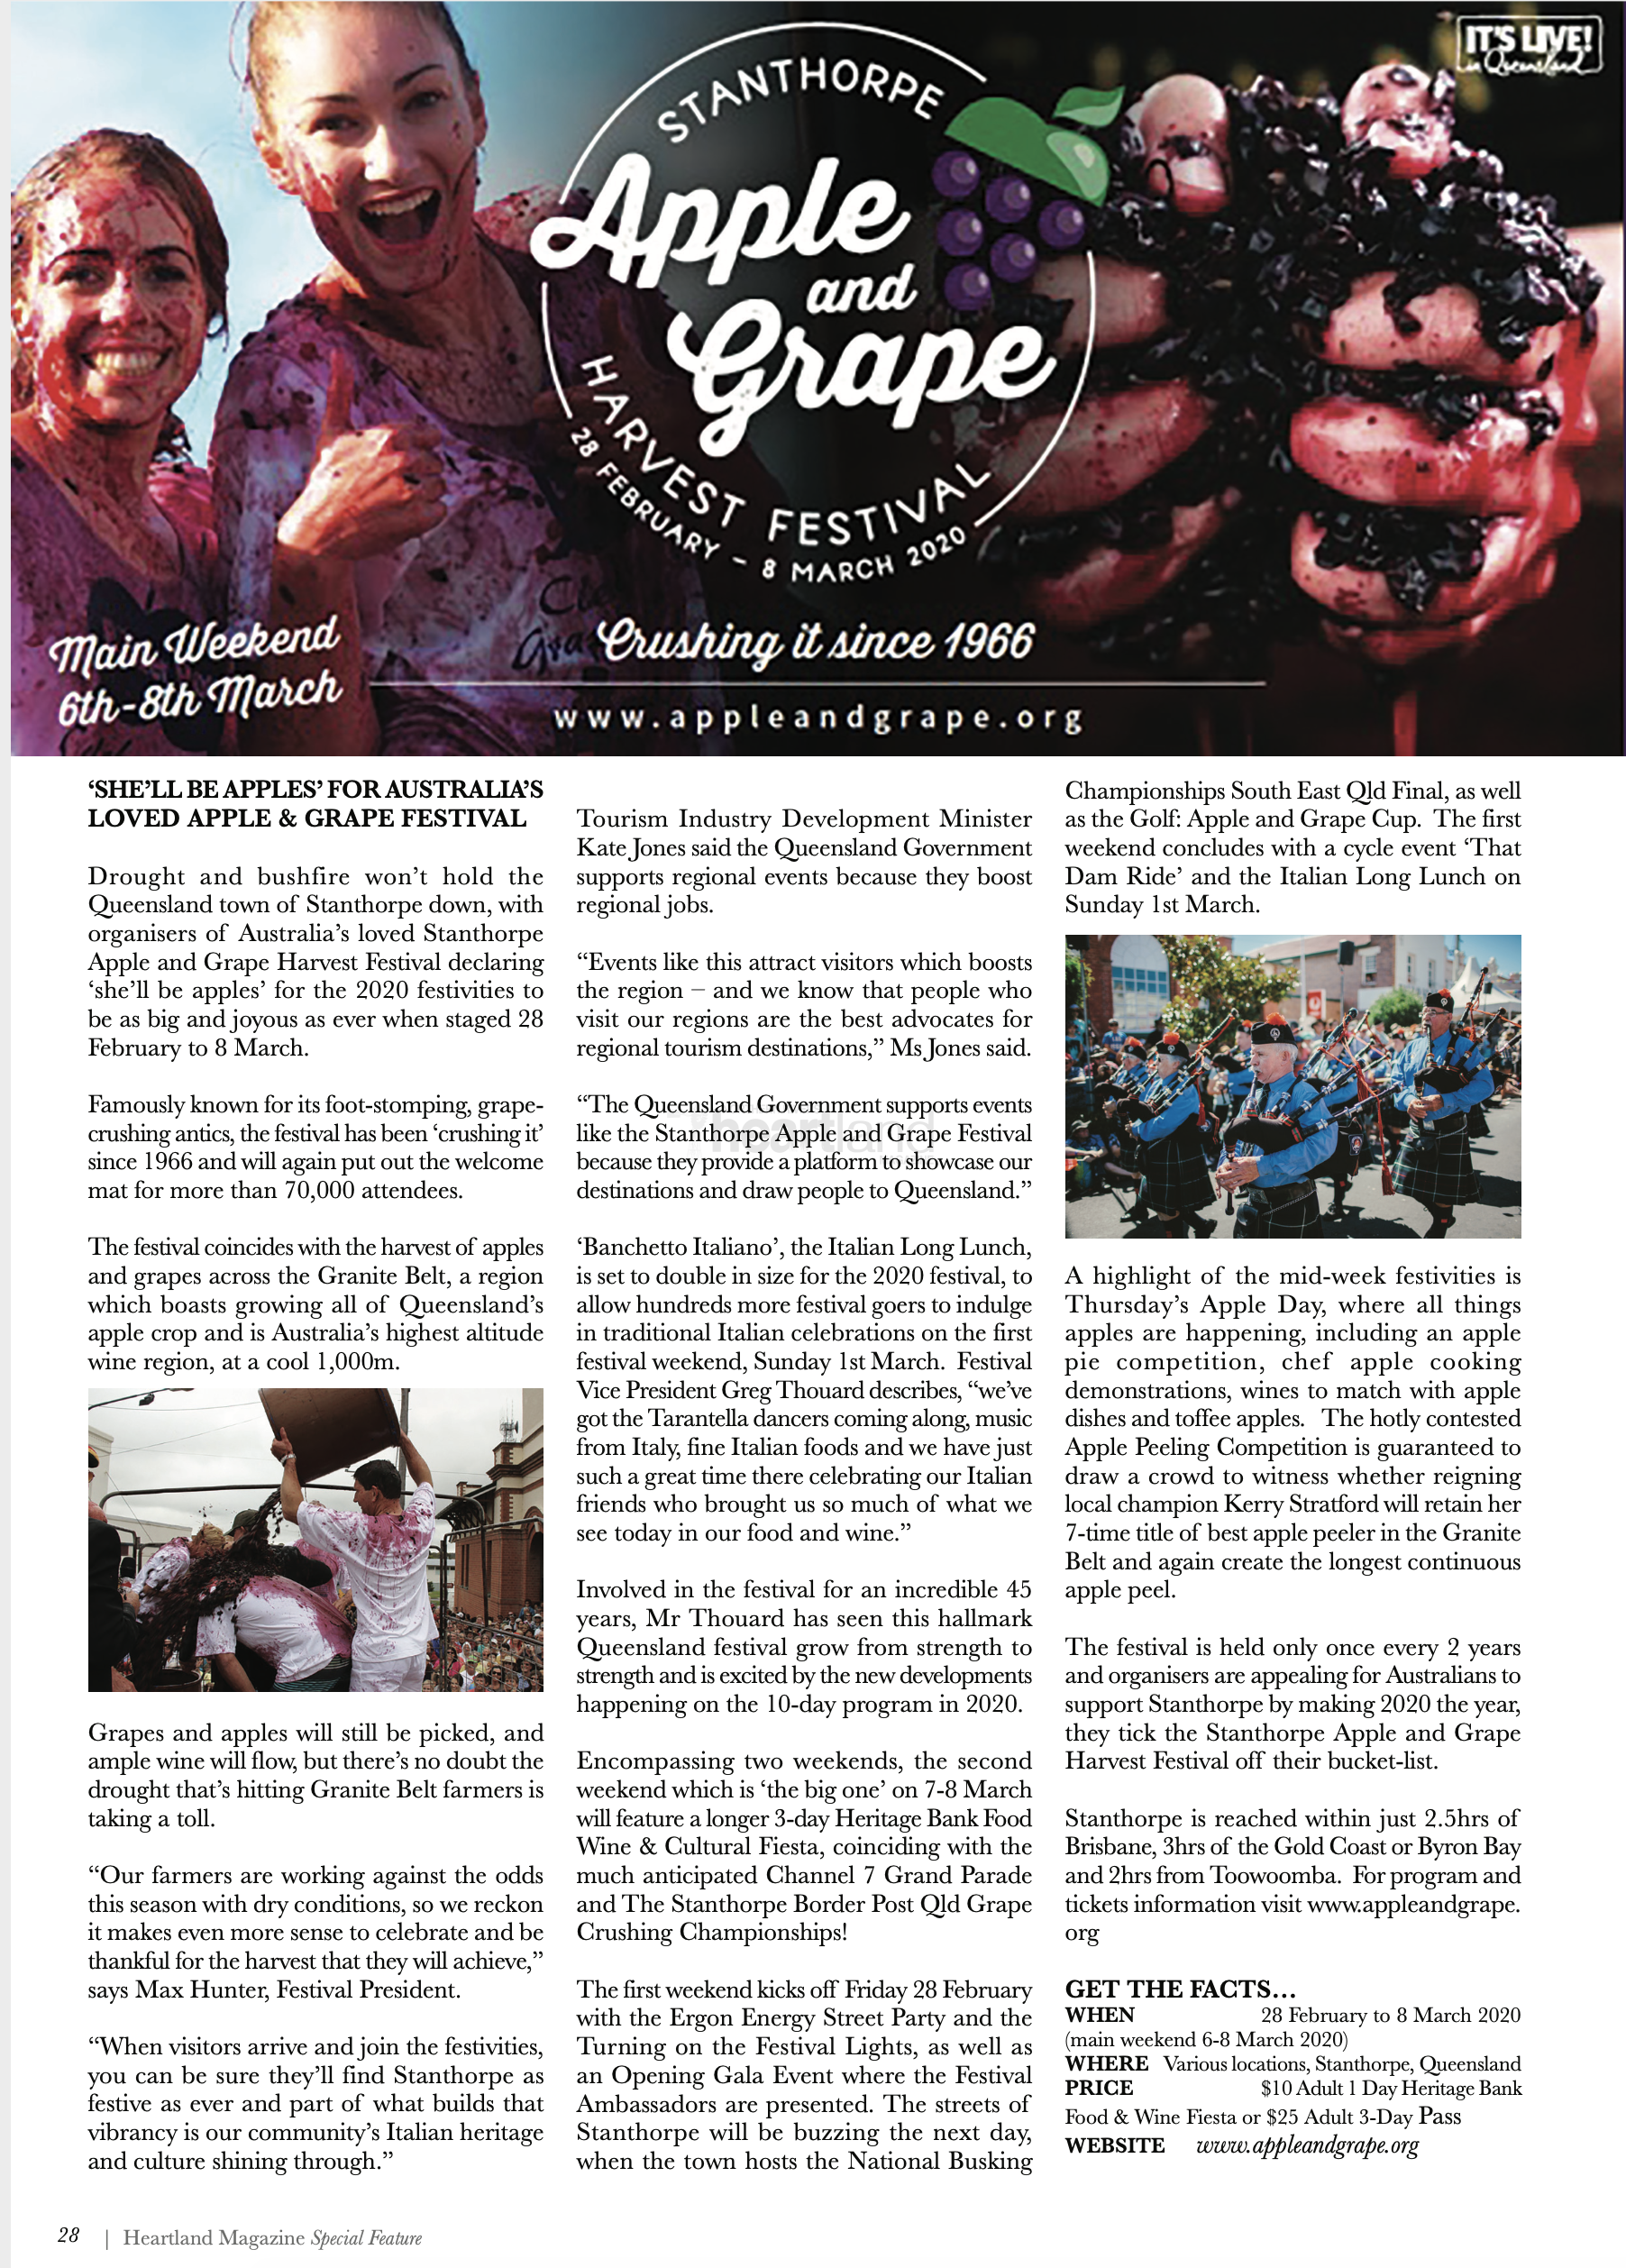 The Stanthorpe Apple & Grape Harvest Festival